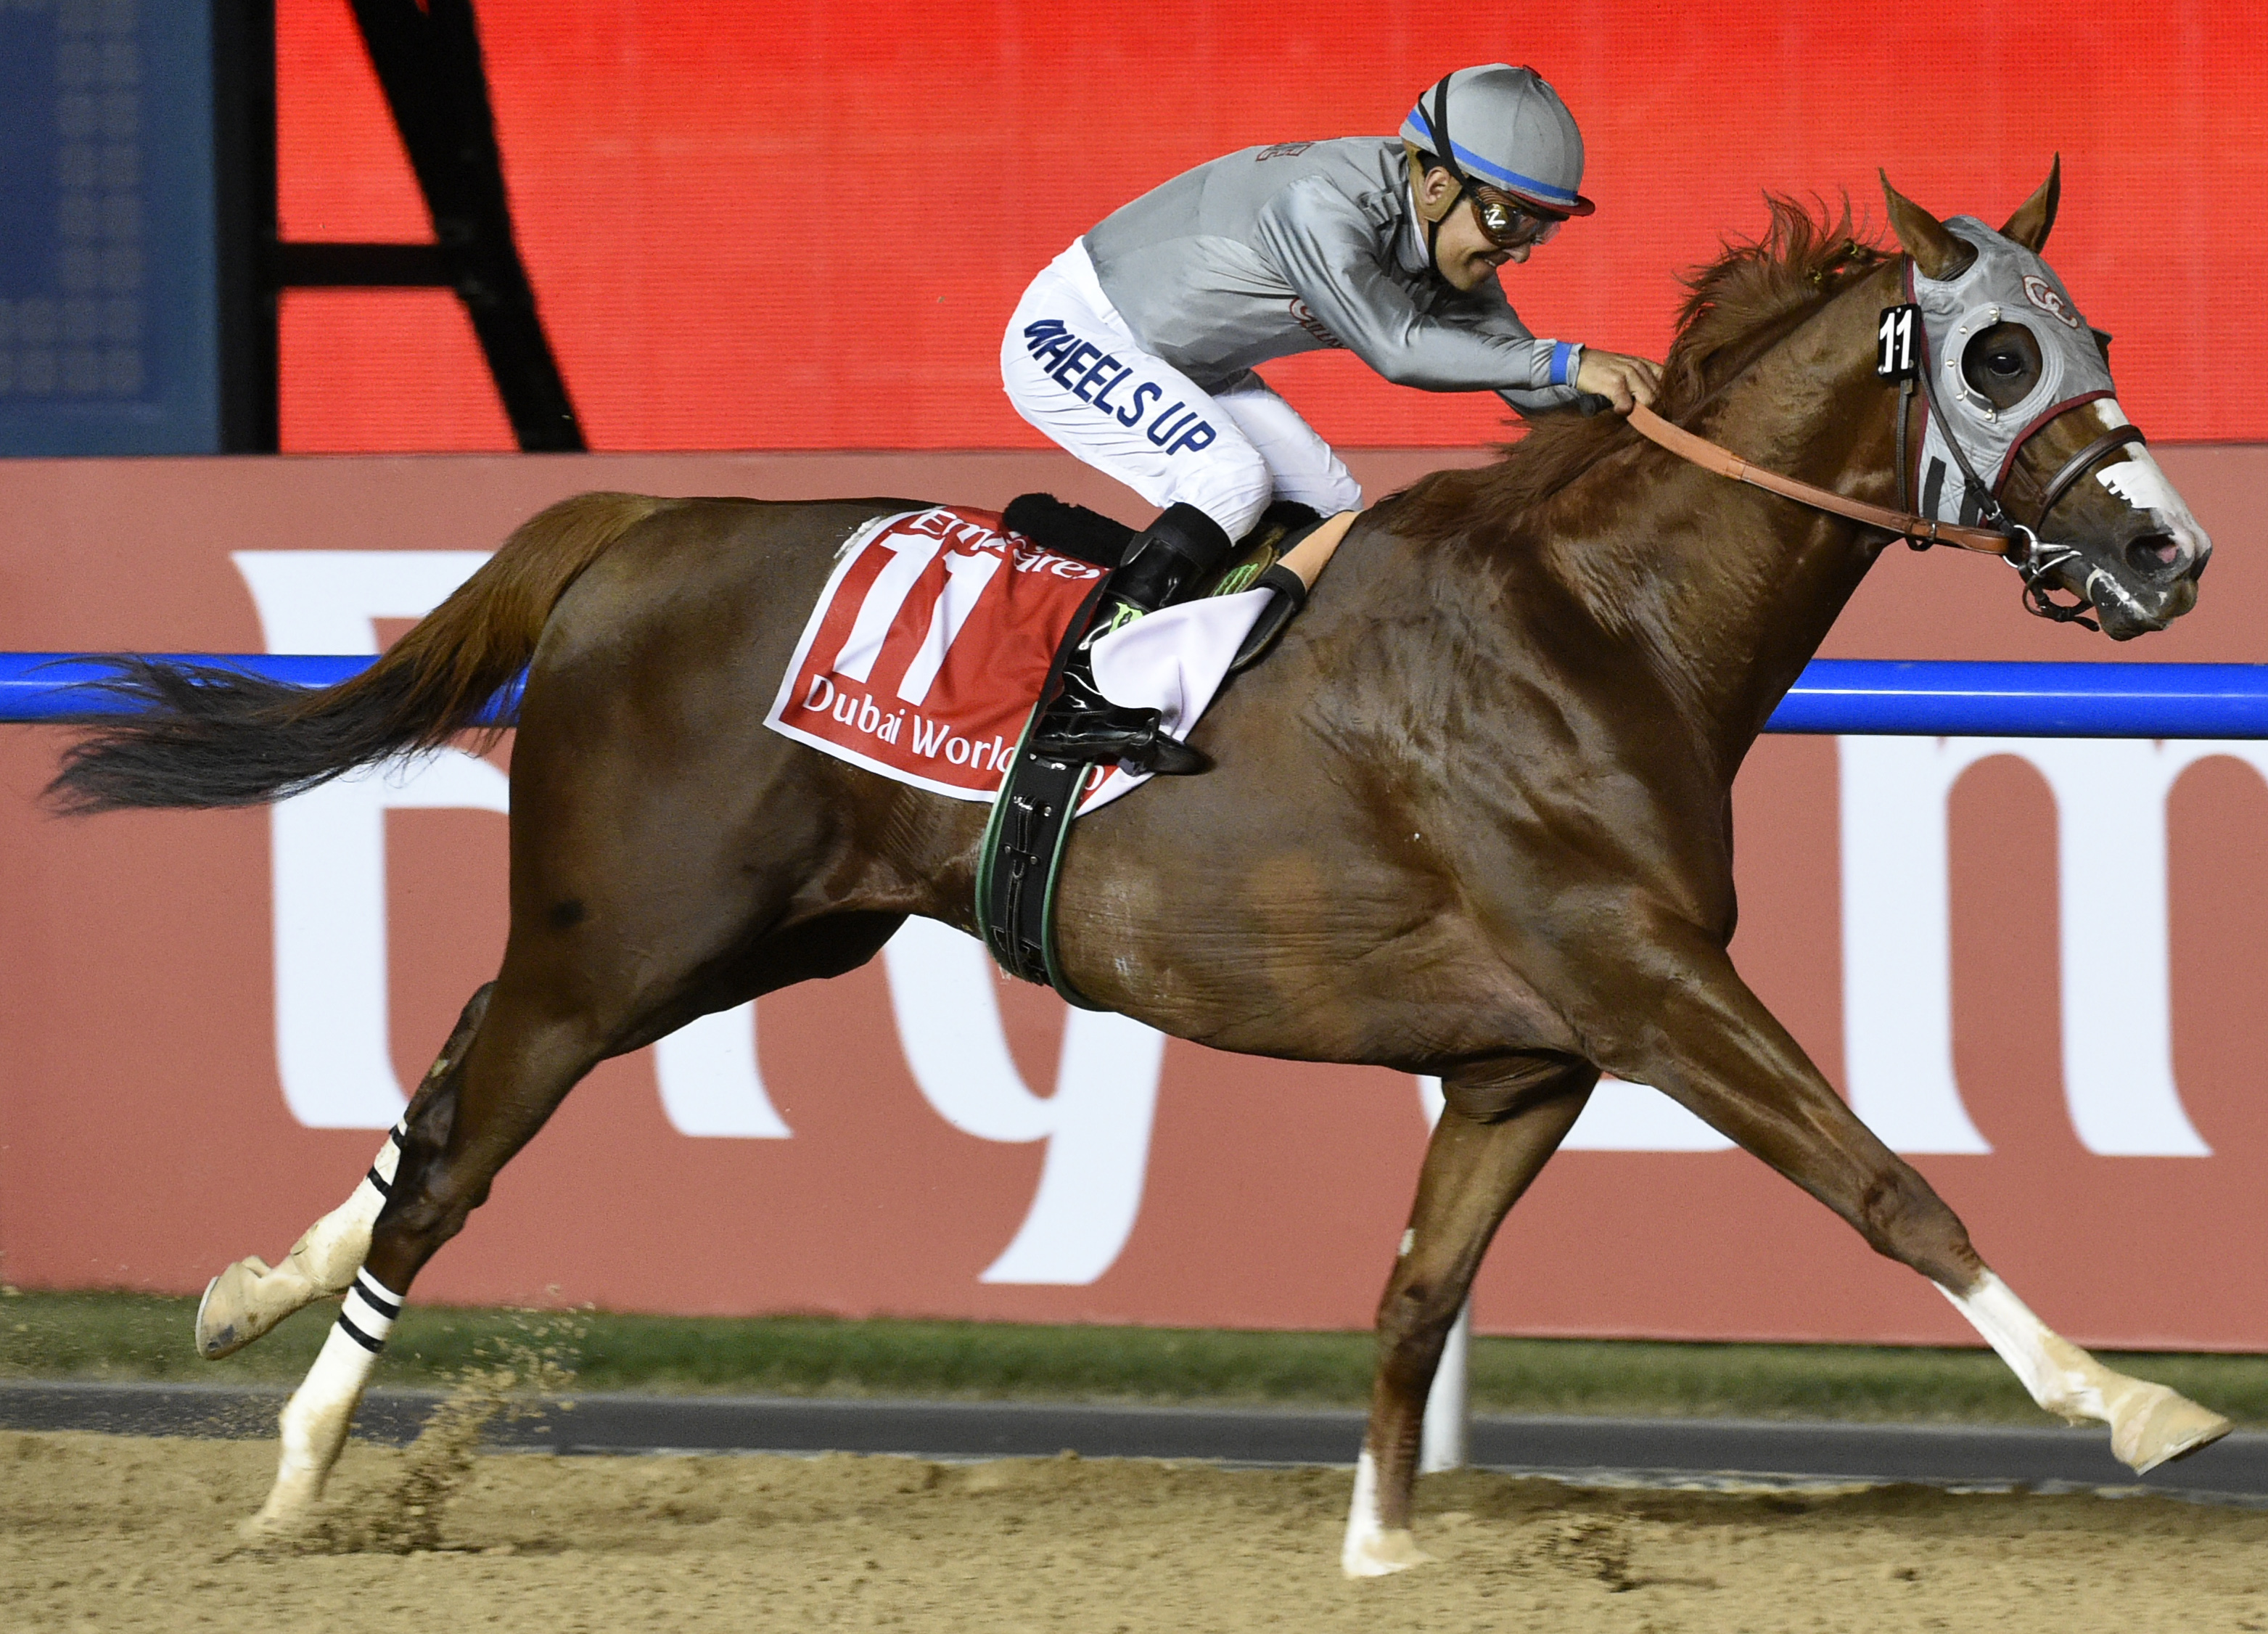 FILE - In this Saturday, March 26, 2016, file photo, California Chrome, idden by Victor Espinoza, wins the Dubai World Cup horse race at Meydan Racecourse in Dubai, United Arab Emirates. Now a regal-looking 5-year-old, Chrome flashed his brilliance of two